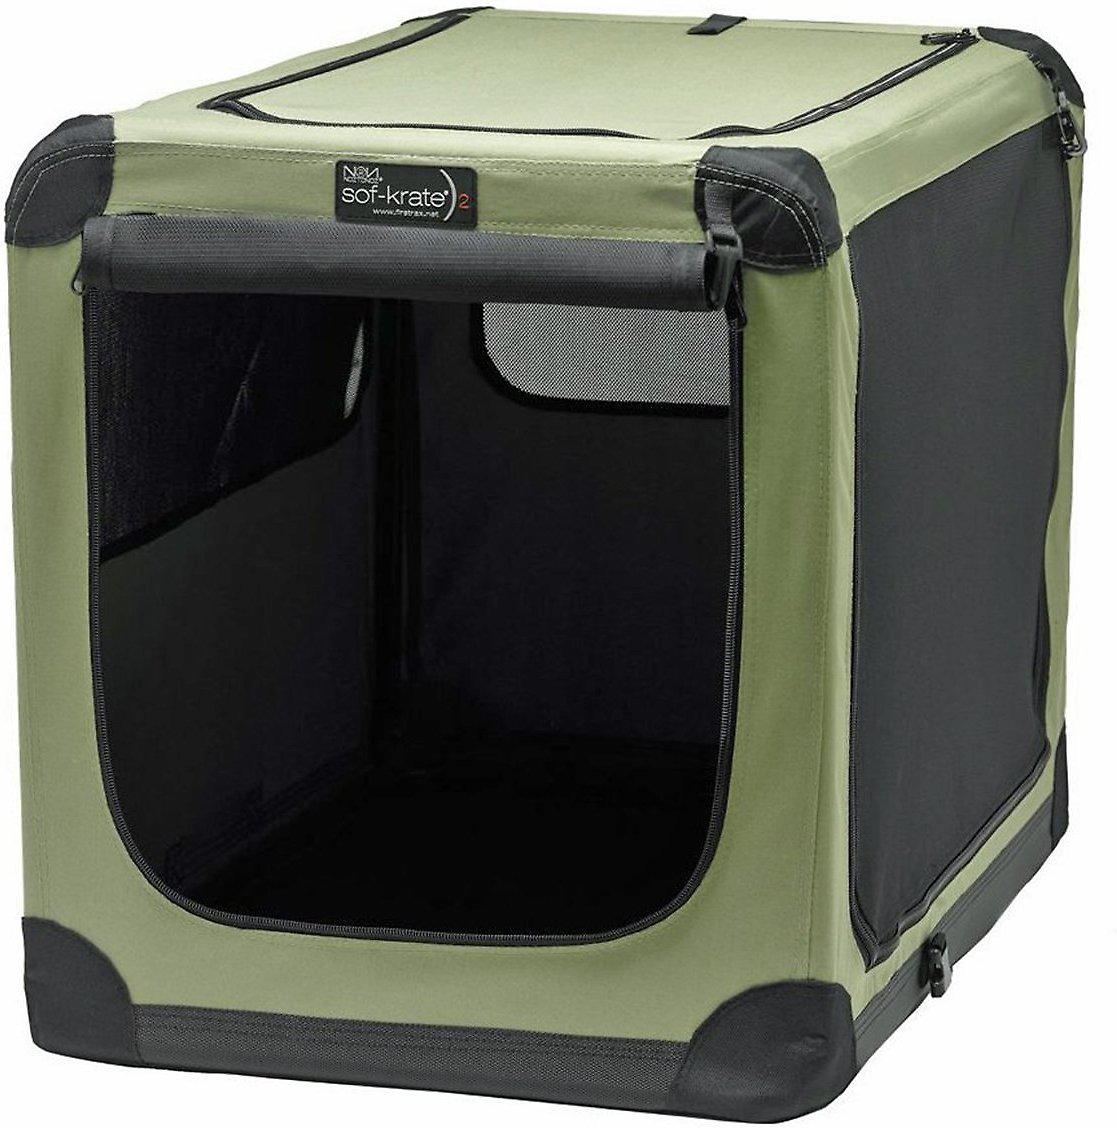 Lovely Firstrax Noz2Noz Sof Krate N2 Series Indoor U0026 Outdoor Pet Home, 42 In    Chewy.com